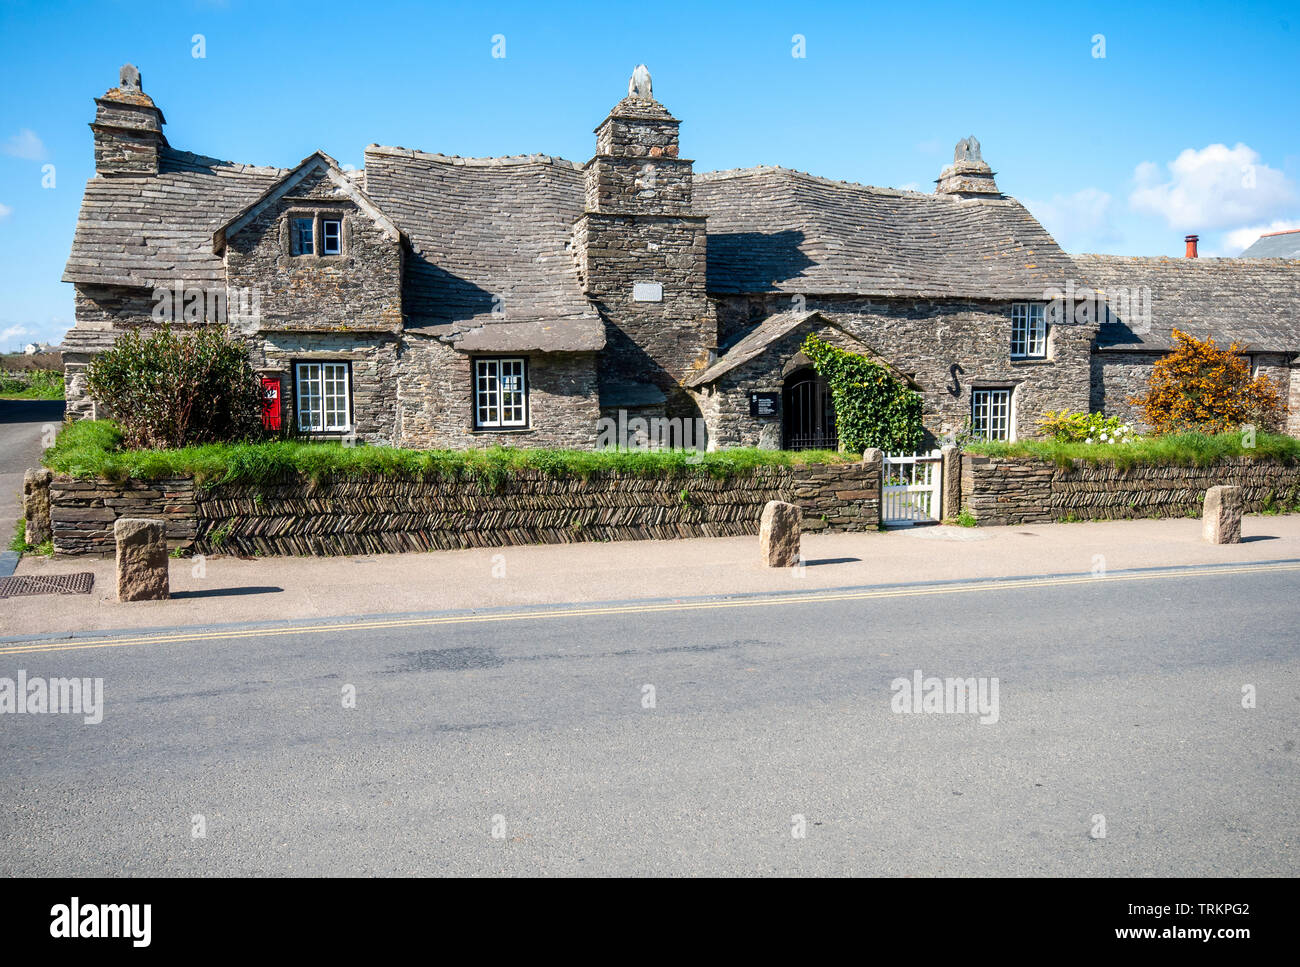 The old post office at Tintagel in Cornwall, England, UK. The 14th century stone house was built to the plan of a medieval manor house. Stock Photo